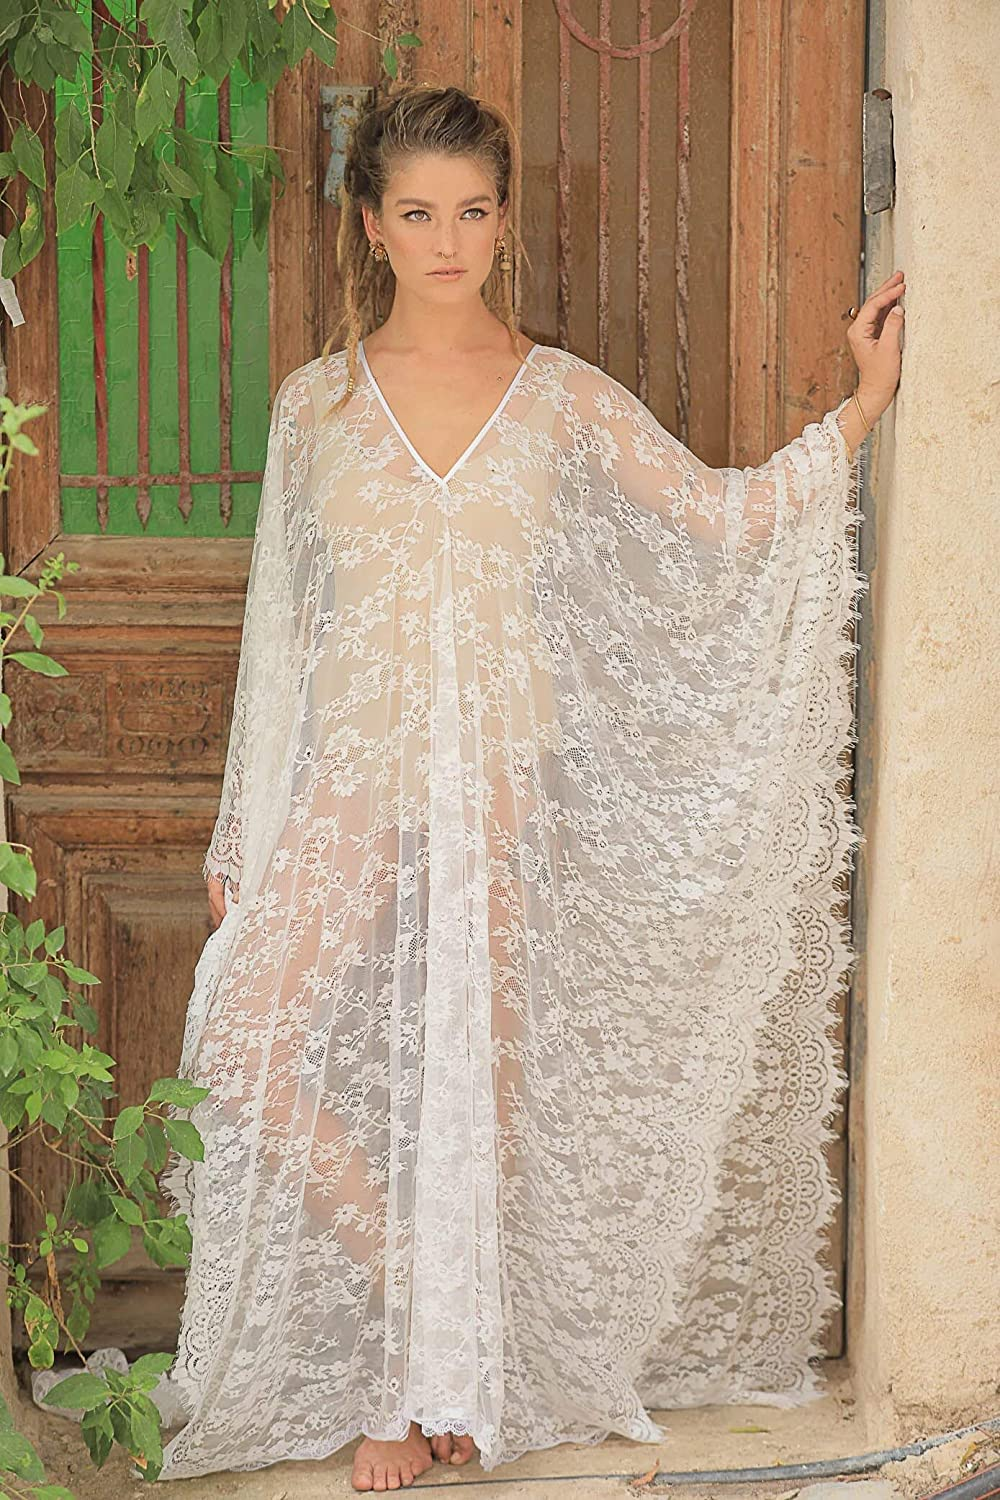 508d9890bf Amazon.com: Over Sized Kaftan Dress Made of Soft French Lace, Can Be Used  as Bohemian Beach or Honeymoon Dress or as a Luxury Wedding Lingerie:  Handmade